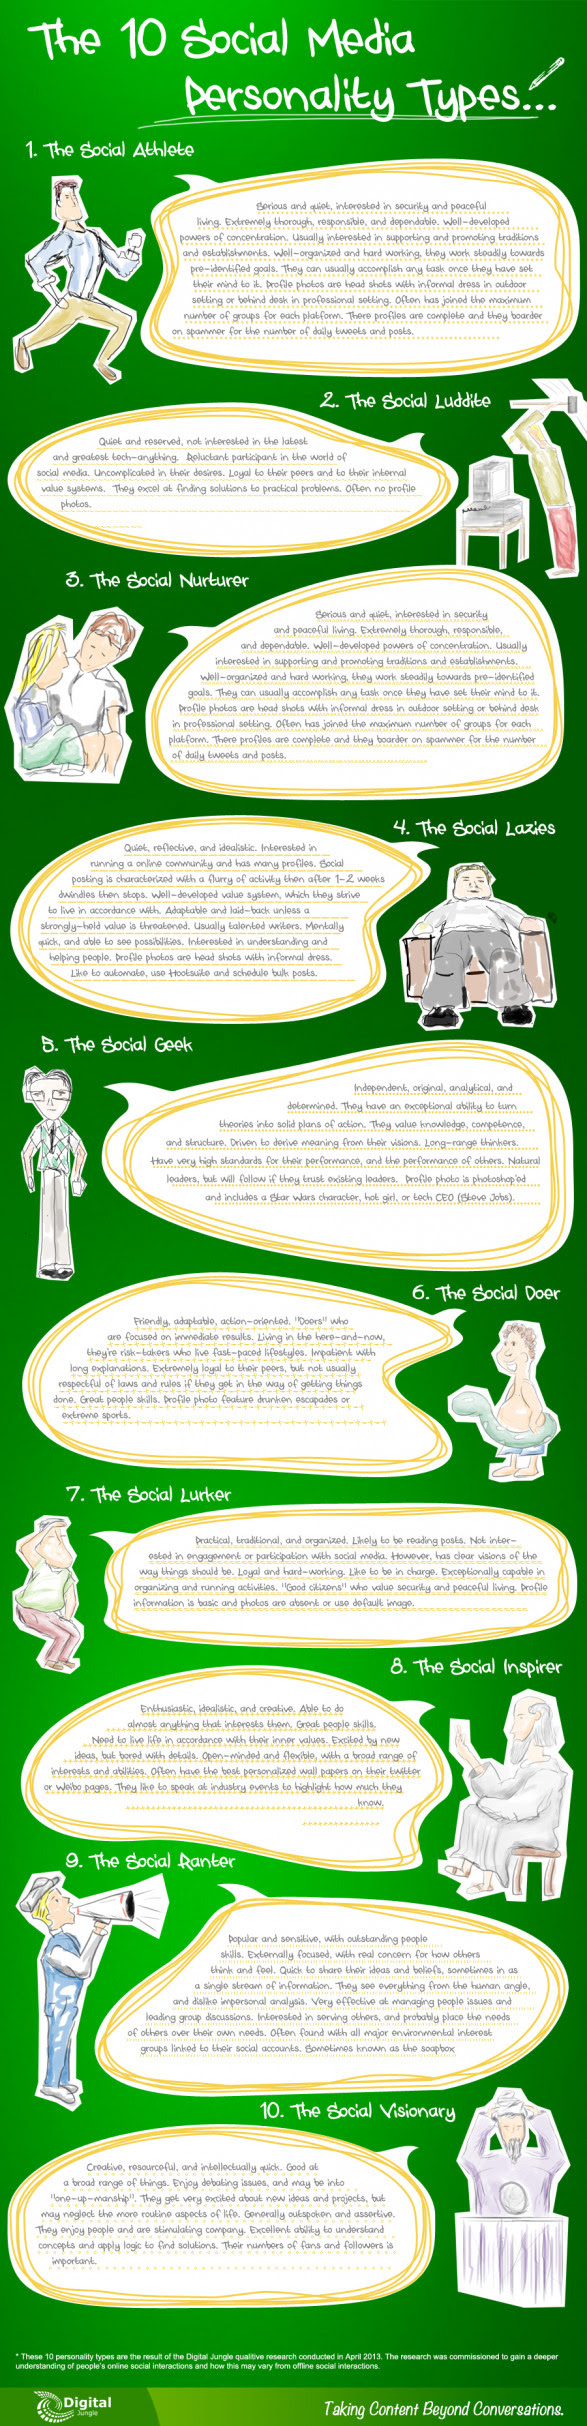 10 Social Media Personality Types image